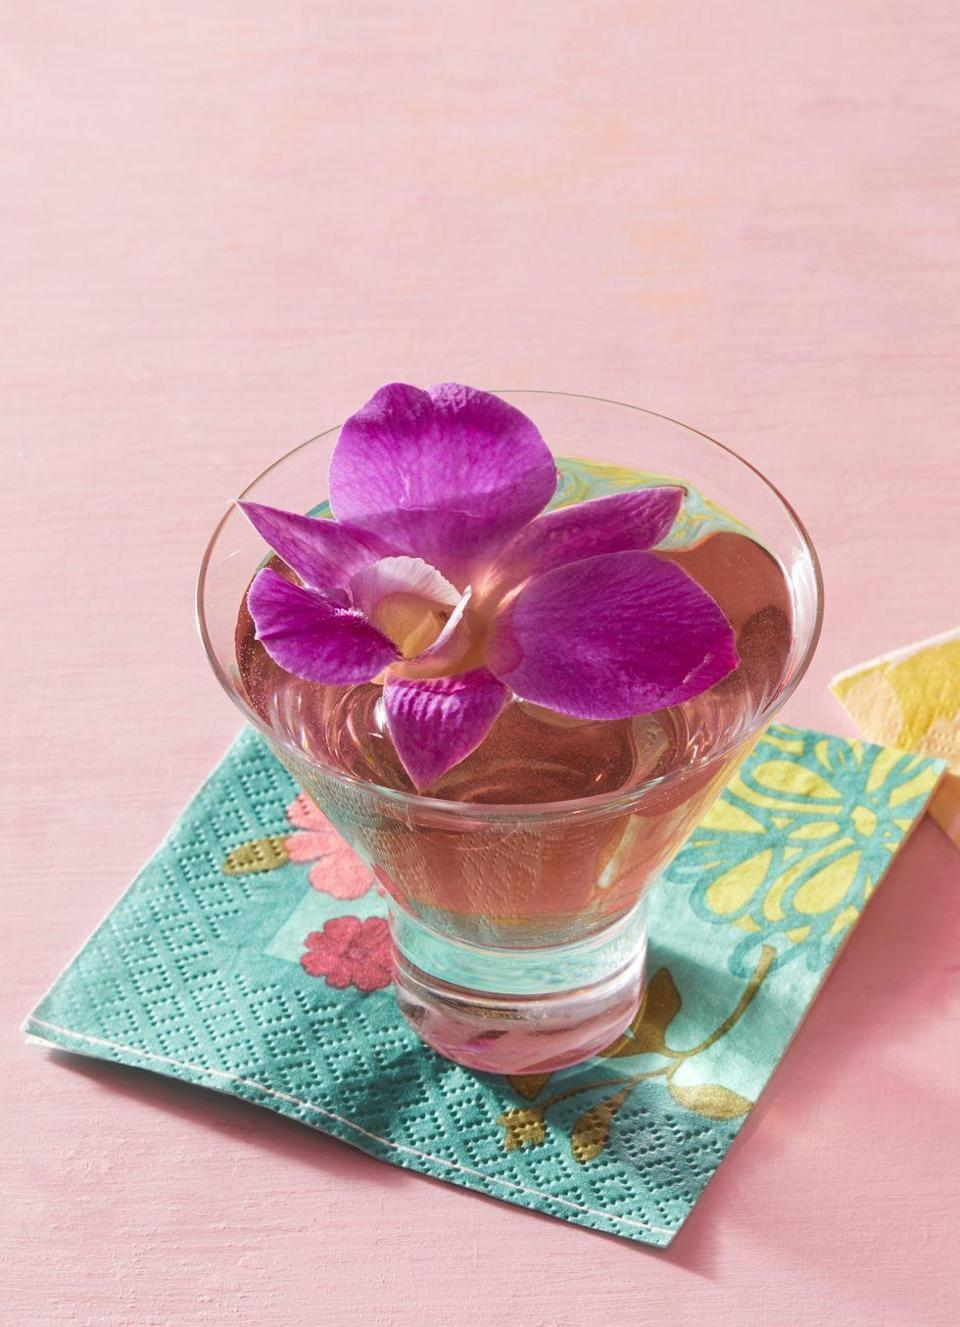 """<p>It doesn't get prettier than this spring cocktail. Flavored with elderflower liqueur and hibiscus rose syrup, it's a great floral sip for Easter.</p><p><a href=""""https://www.thepioneerwoman.com/food-cooking/recipes/a32303615/butterfly-martini-recipe/"""" rel=""""nofollow noopener"""" target=""""_blank"""" data-ylk=""""slk:Get the recipe."""" class=""""link rapid-noclick-resp""""><strong>Get the recipe.</strong></a></p><p><a class=""""link rapid-noclick-resp"""" href=""""https://go.redirectingat.com?id=74968X1596630&url=https%3A%2F%2Fwww.walmart.com%2Fsearch%2F%3Fquery%3Dmartini%2Bglasses&sref=https%3A%2F%2Fwww.thepioneerwoman.com%2Ffood-cooking%2Fmeals-menus%2Fg35585877%2Feaster-recipes%2F"""" rel=""""nofollow noopener"""" target=""""_blank"""" data-ylk=""""slk:SHOP MARTINI GLASSES"""">SHOP MARTINI GLASSES</a></p>"""